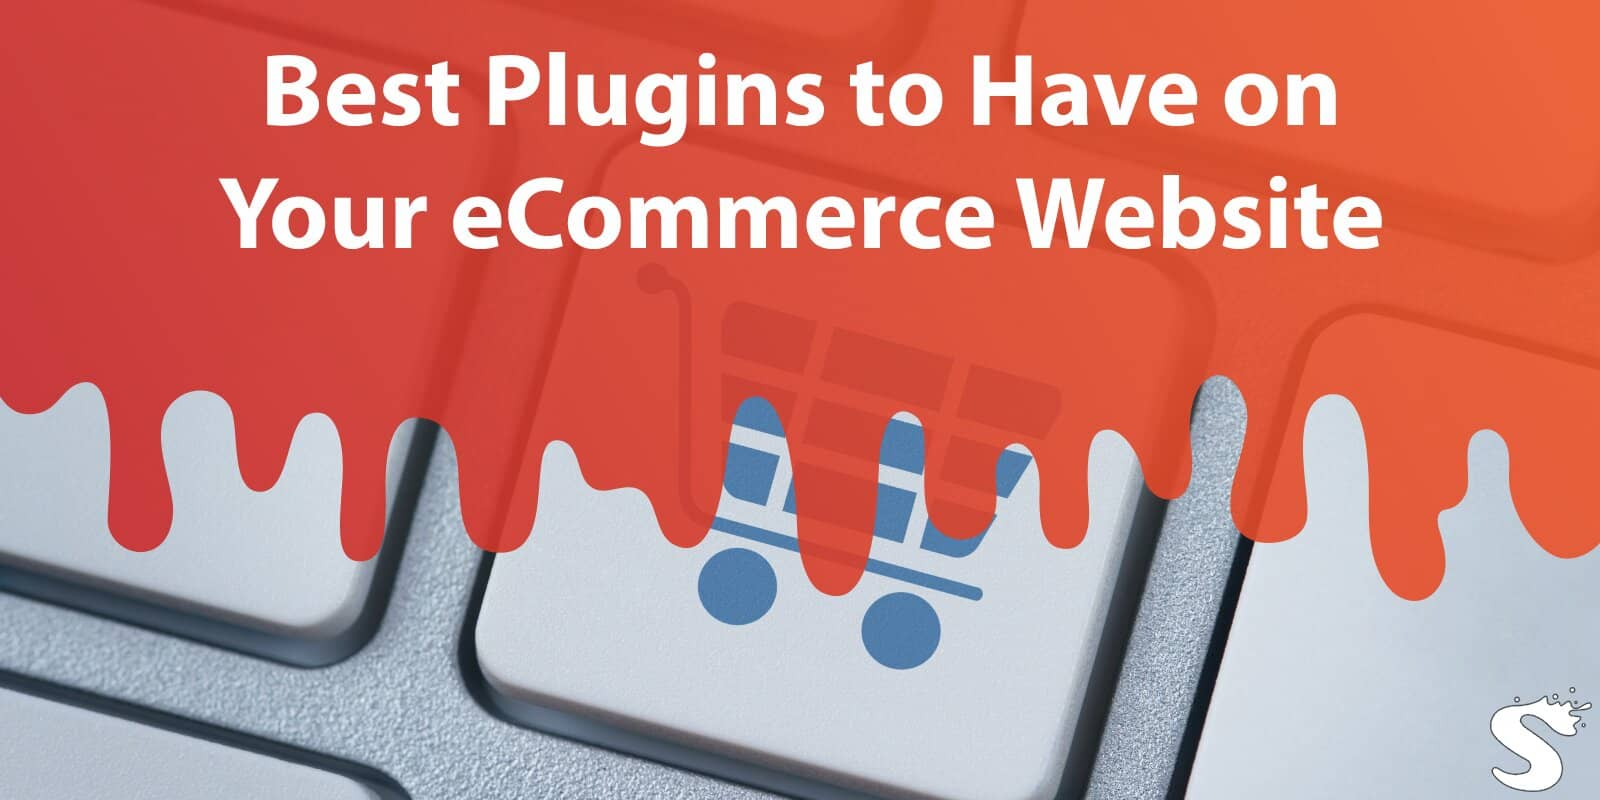 Best Plugins to Have on Your eCommerce Website That Will Turn It Into a Spot Customers Regularly Visit